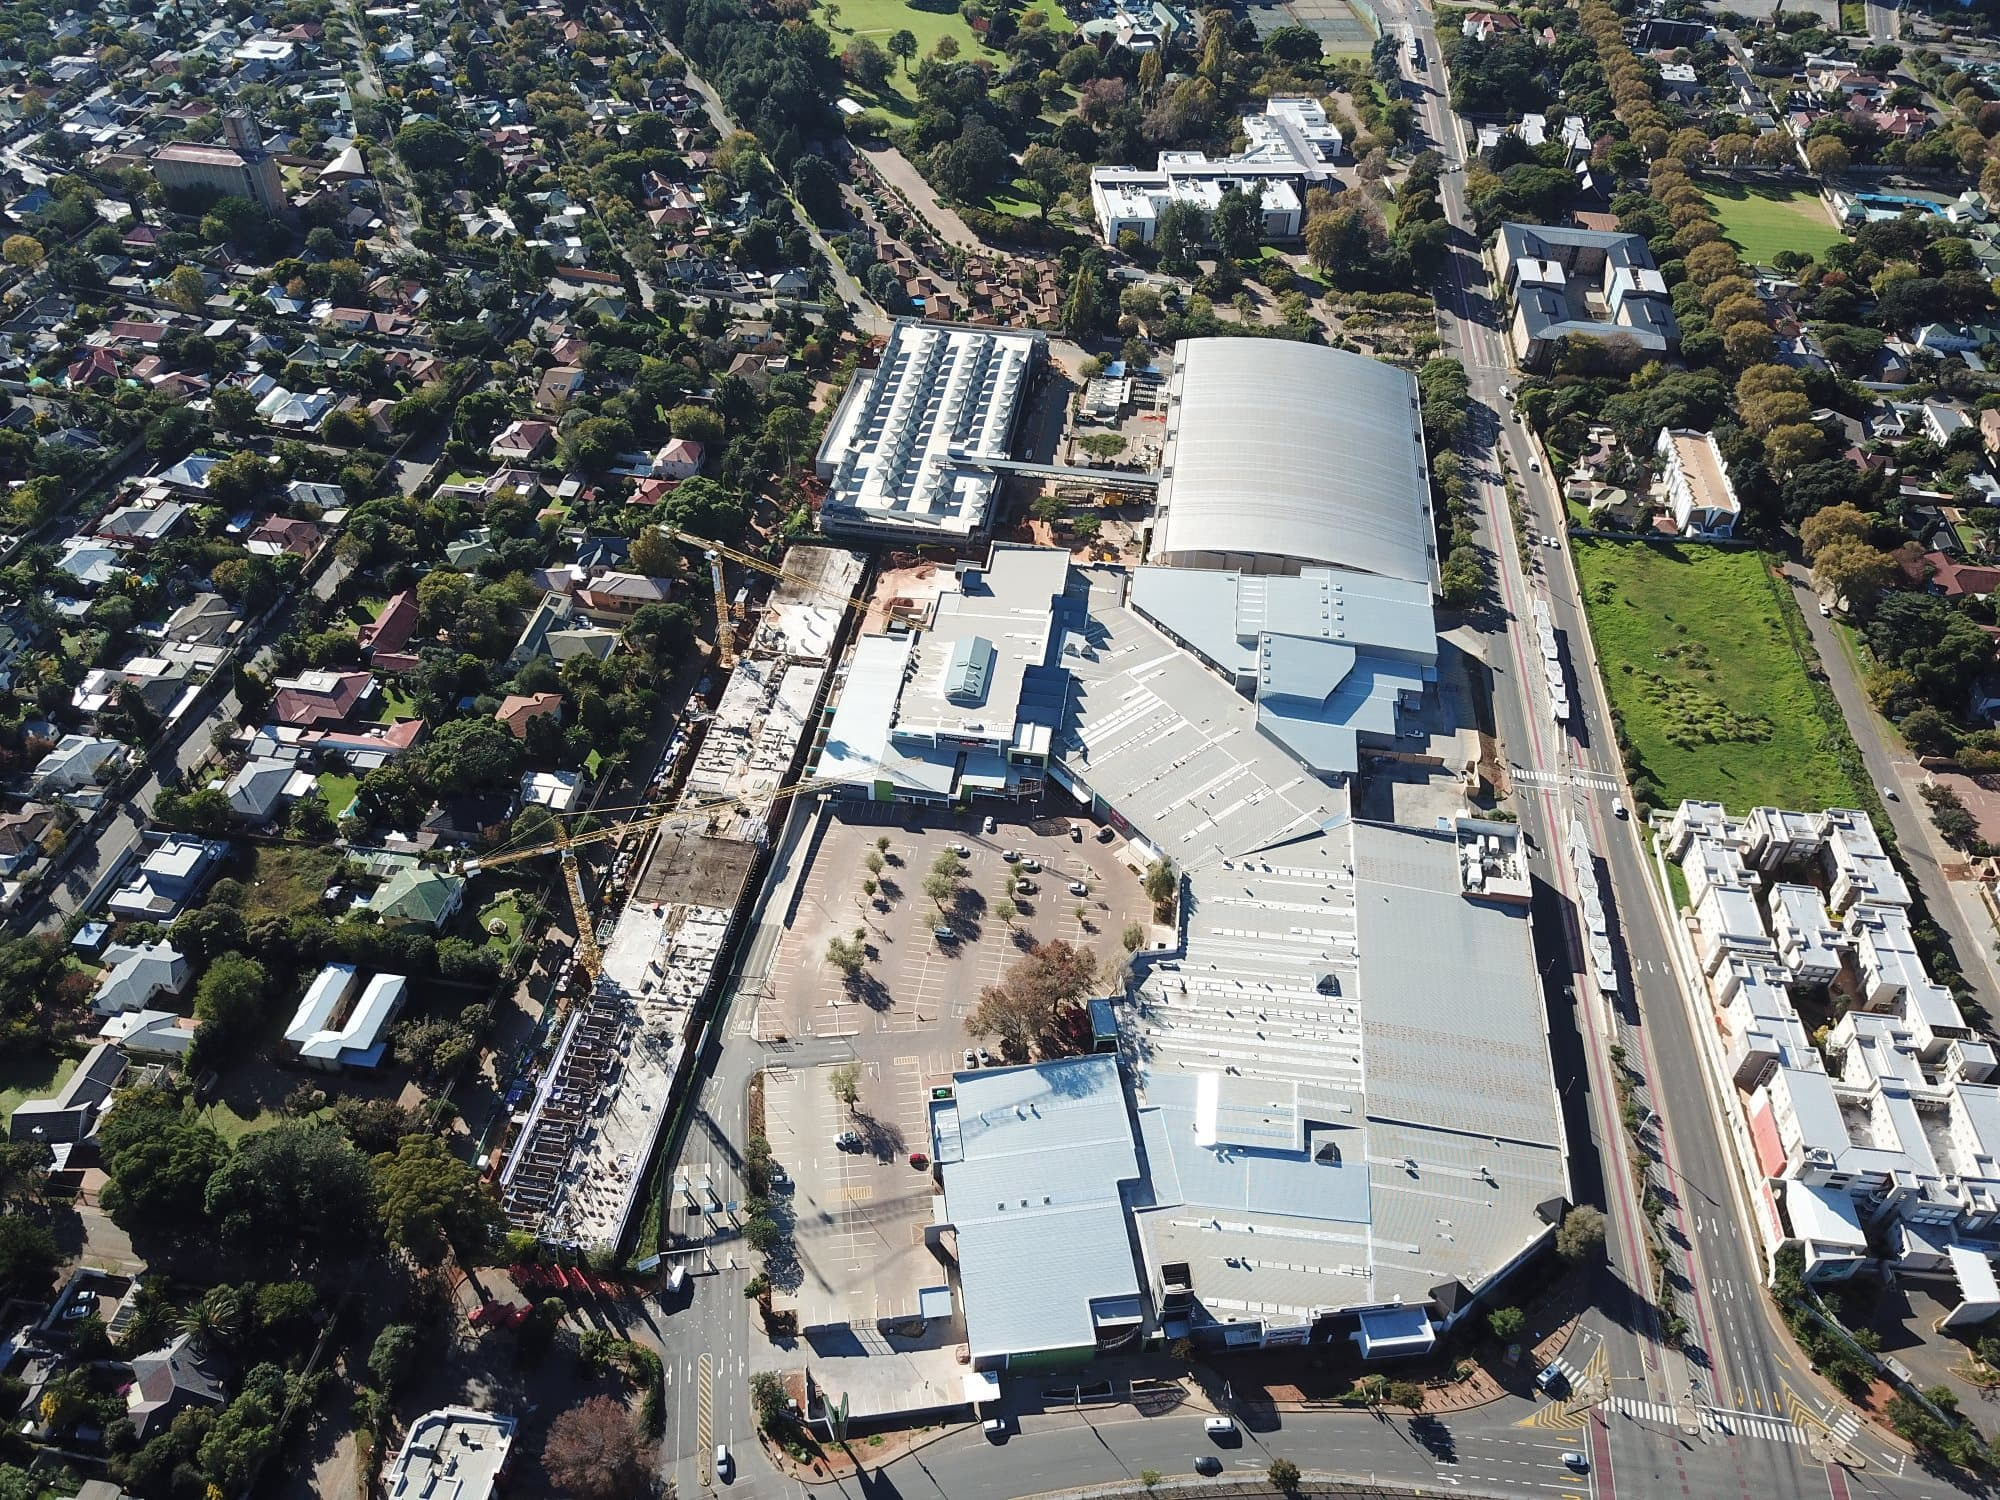 Global Roofing overcomes challenges in Campus Square extension